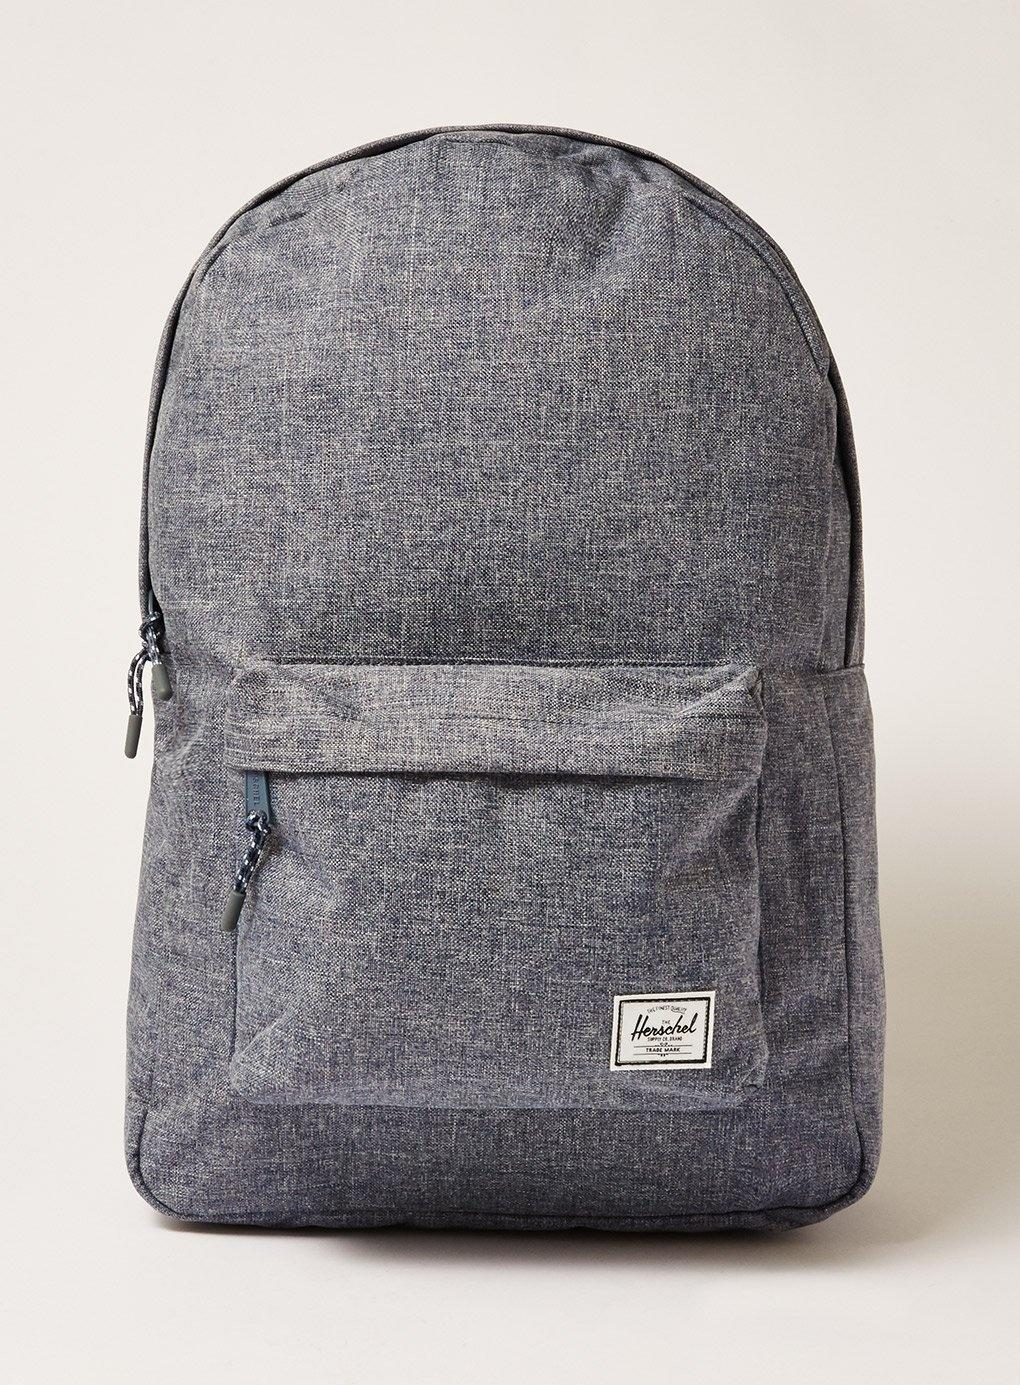 44809ac7534 Herschel Supply Co. Chambray Classic Backpack in Gray for Men - Save ...